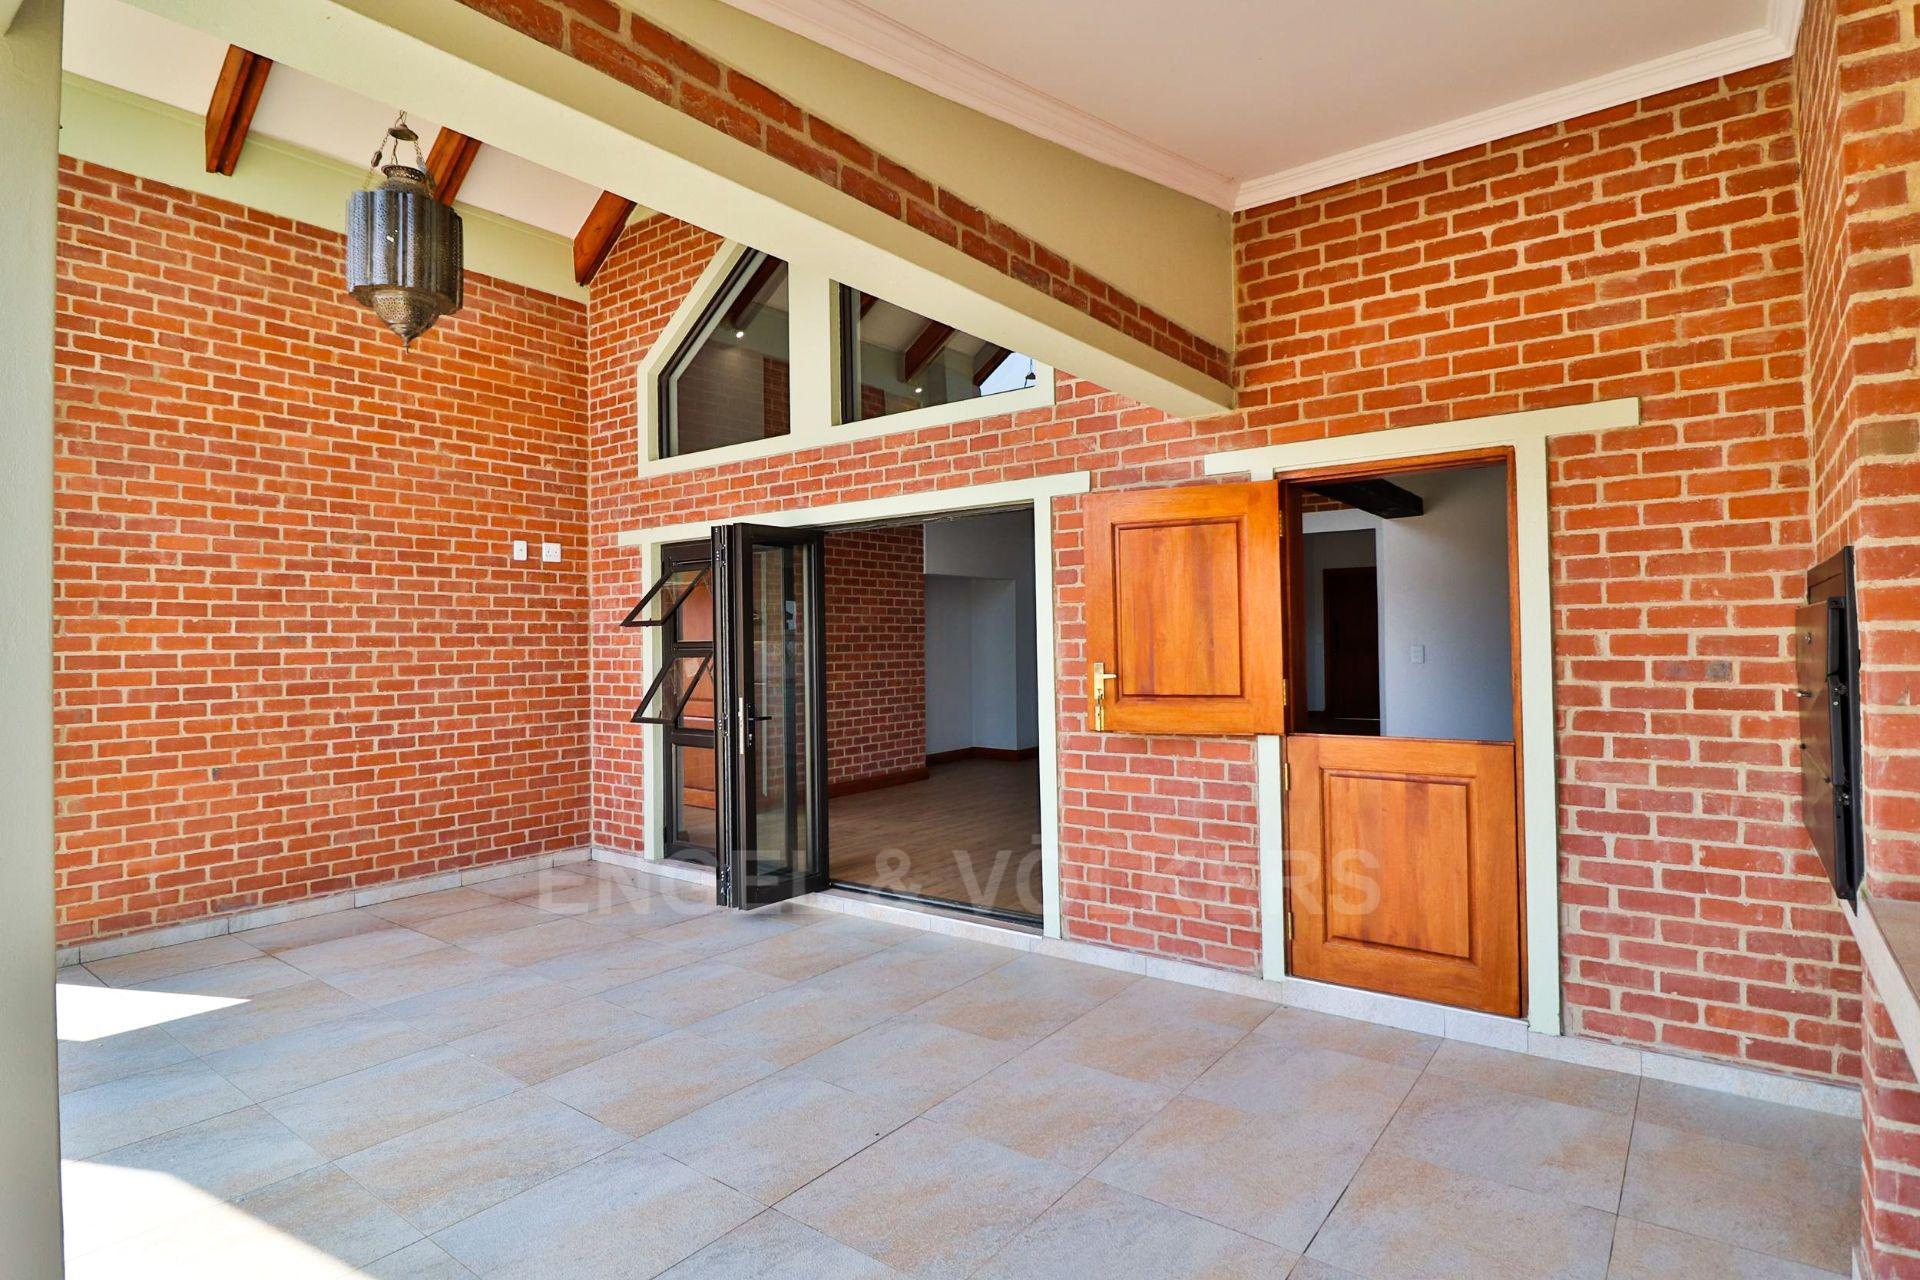 House in Landsmeer - Large outside entertainment area